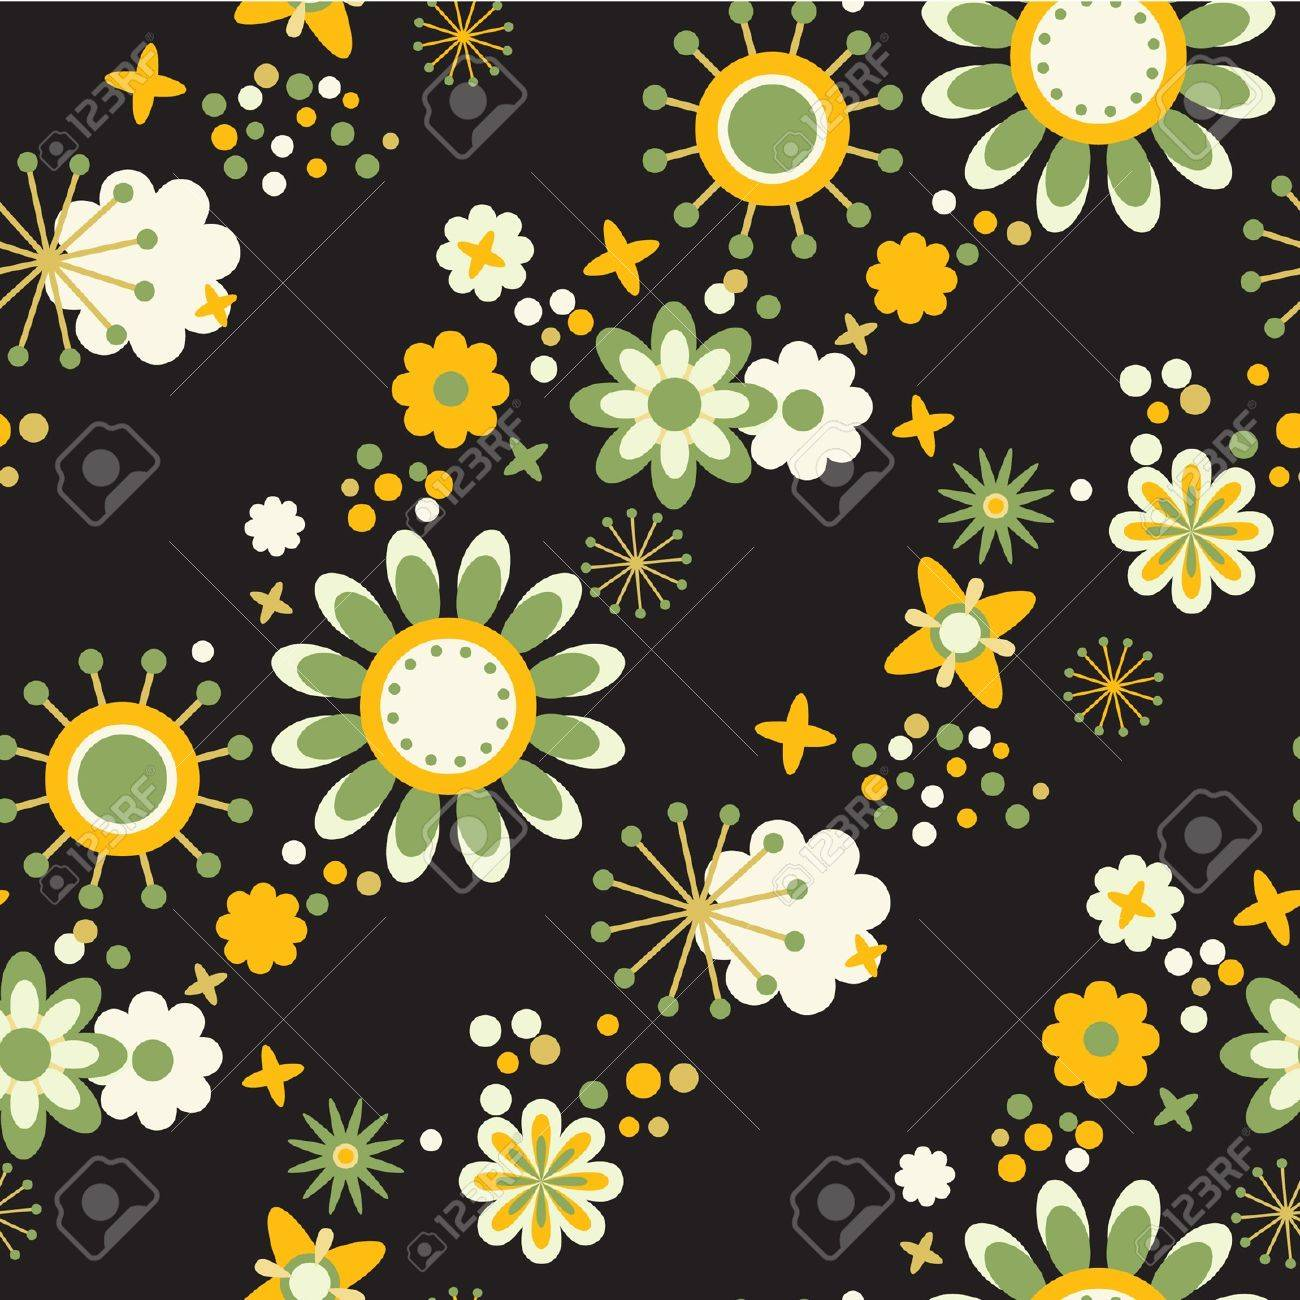 Seamless Floral Wallpaper Flowers At Black Background